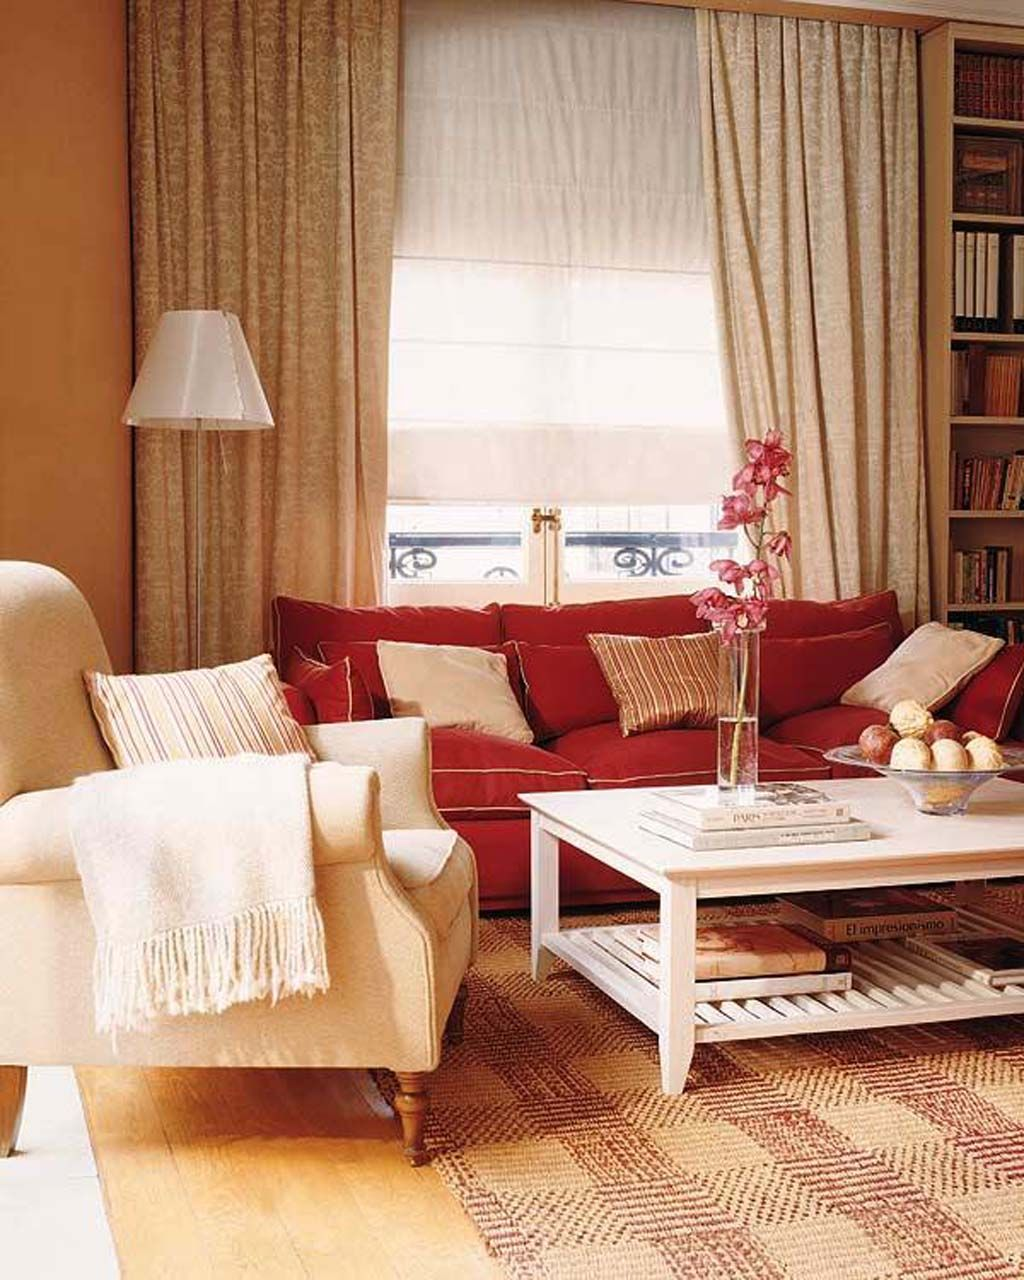 30 Small Living Room Decorating Ideas | Red couch living ...